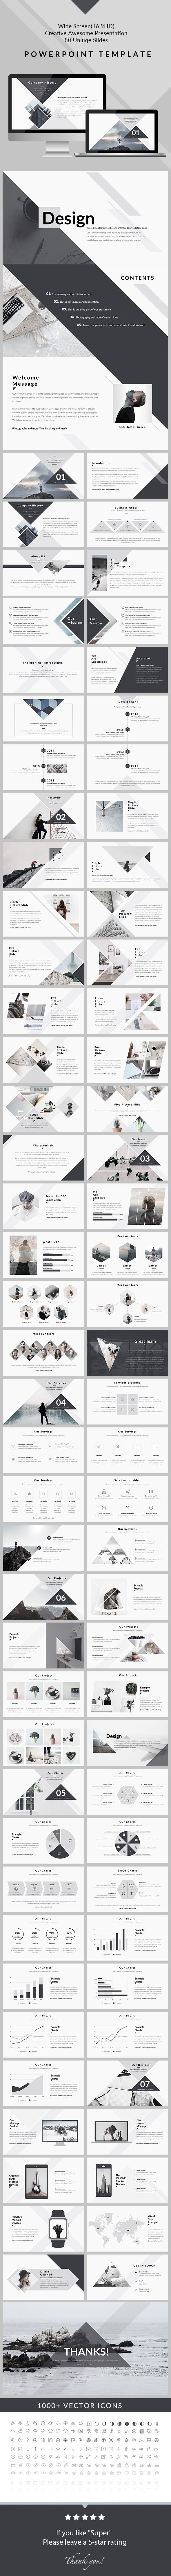 powerpoint template file